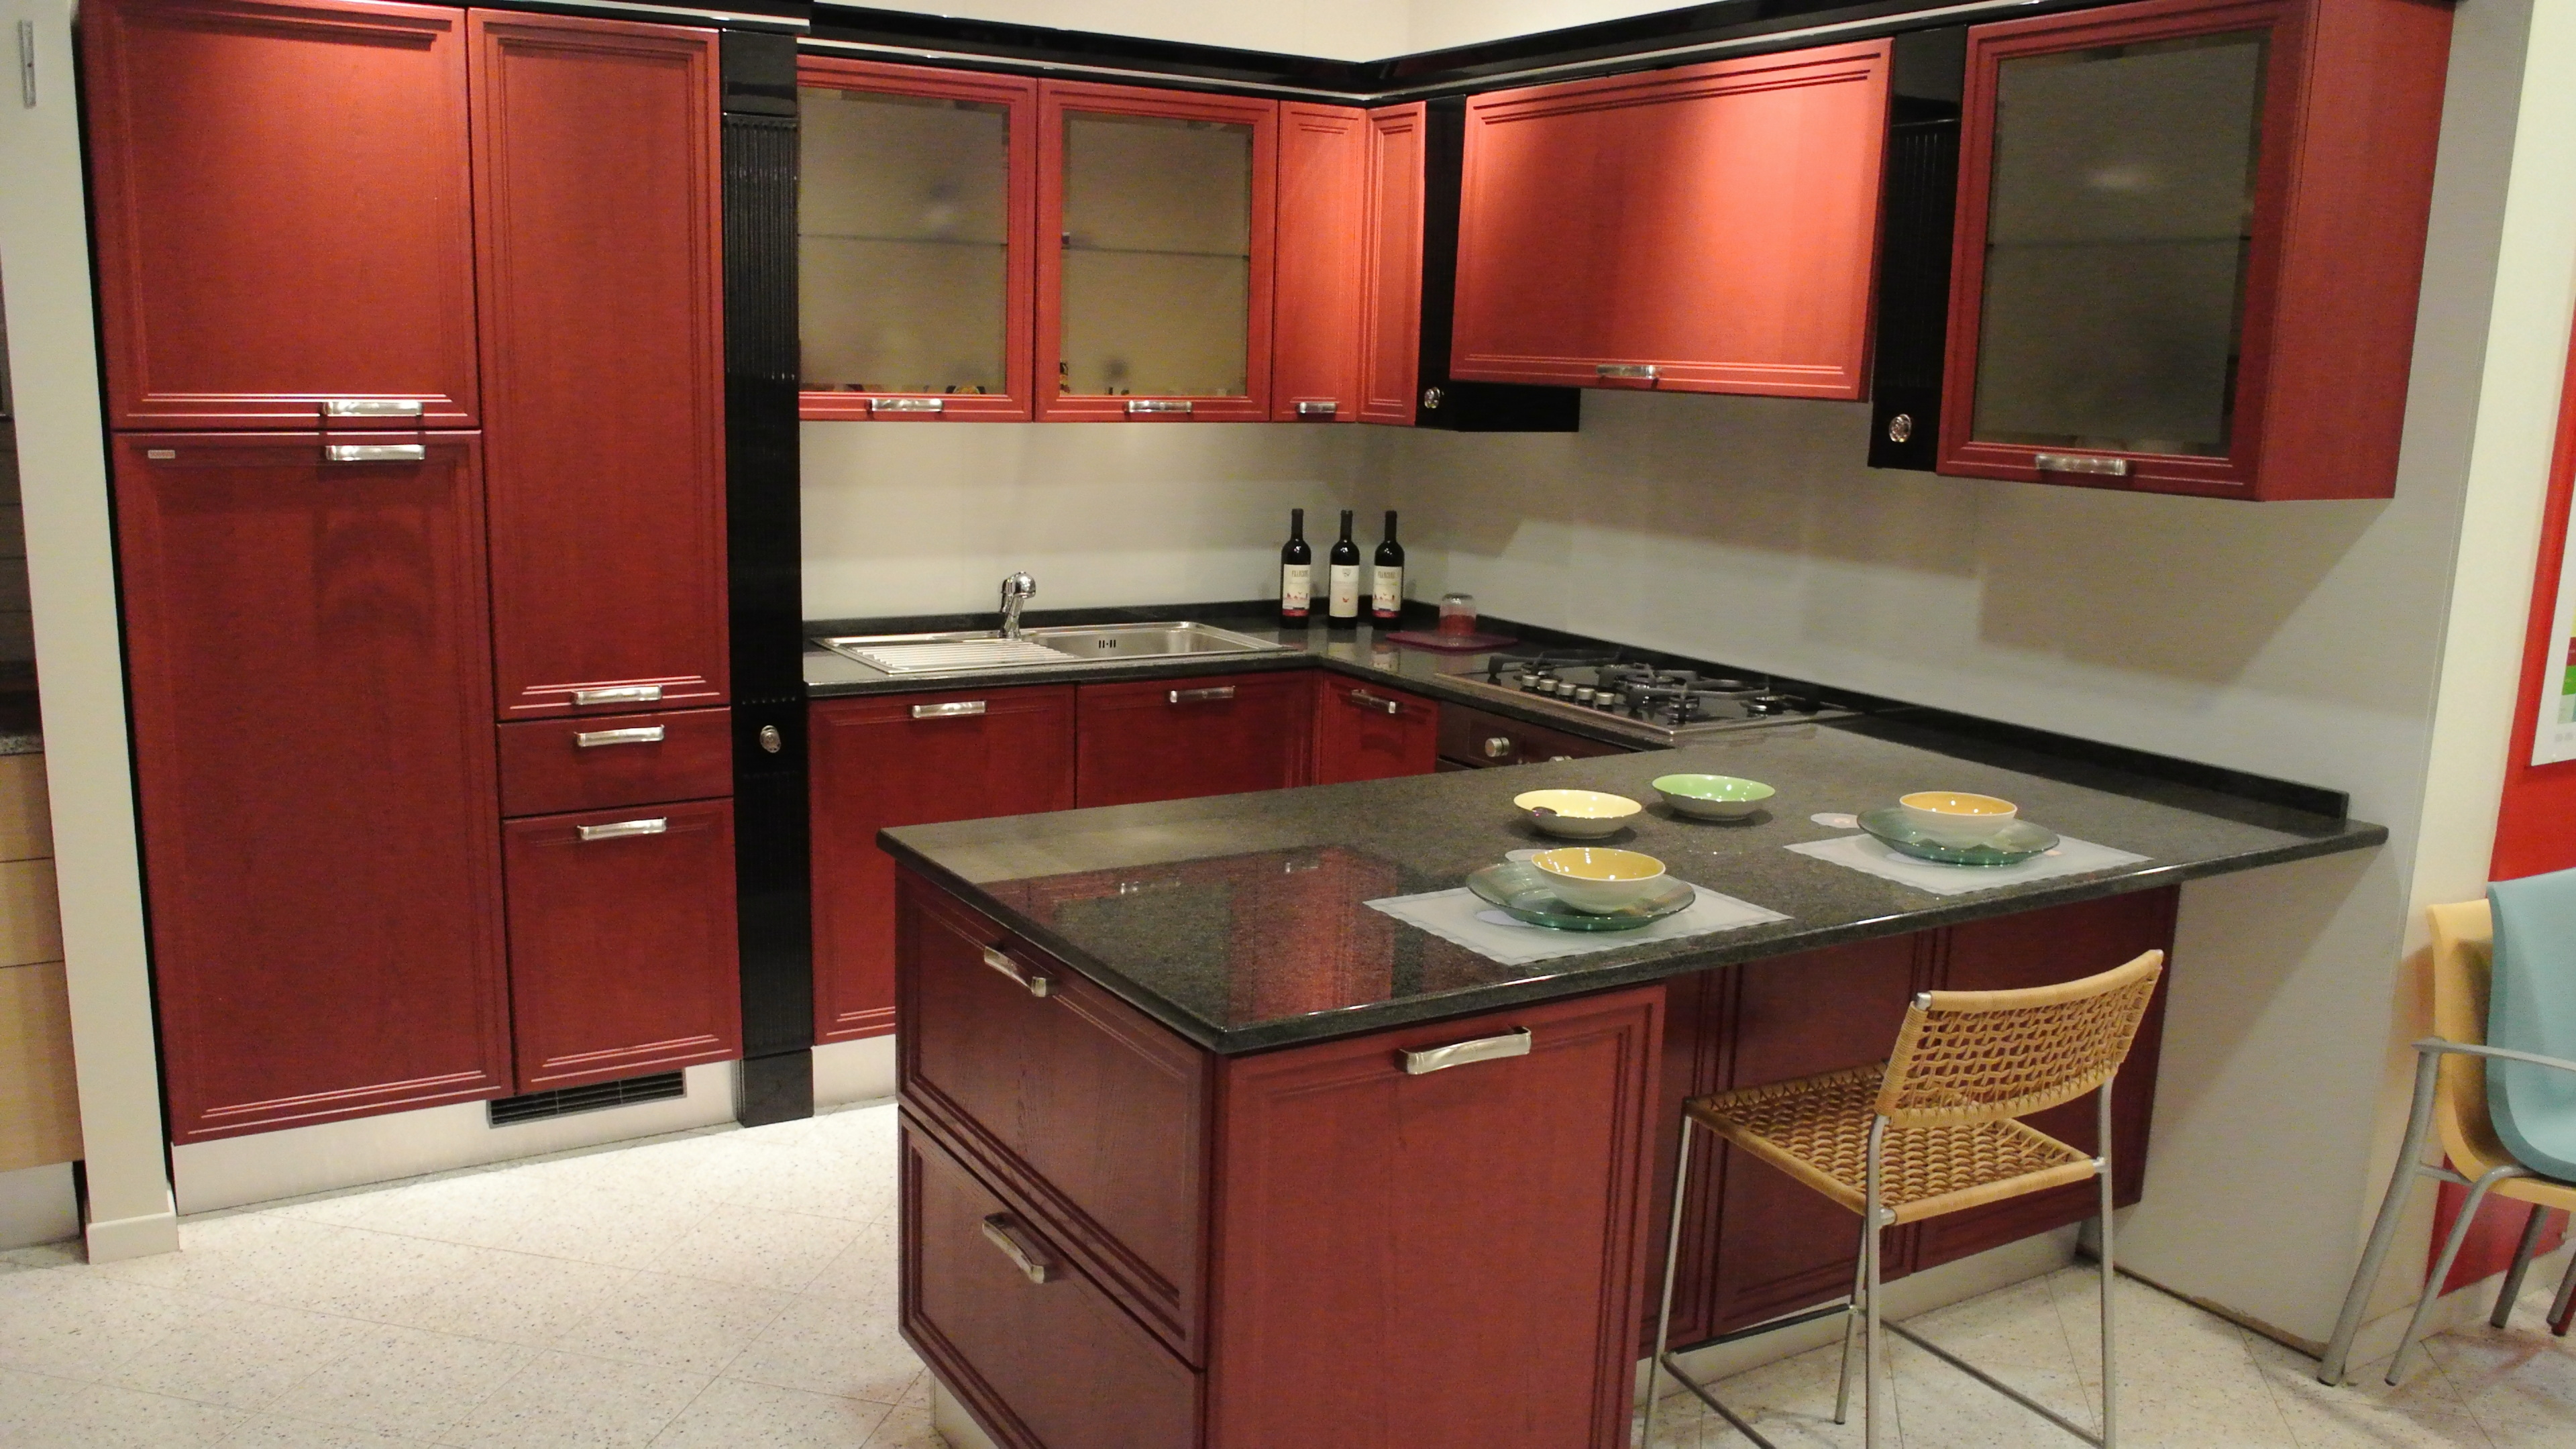 Awesome Cucina Rossa Scavolini Pictures - House Interior ...